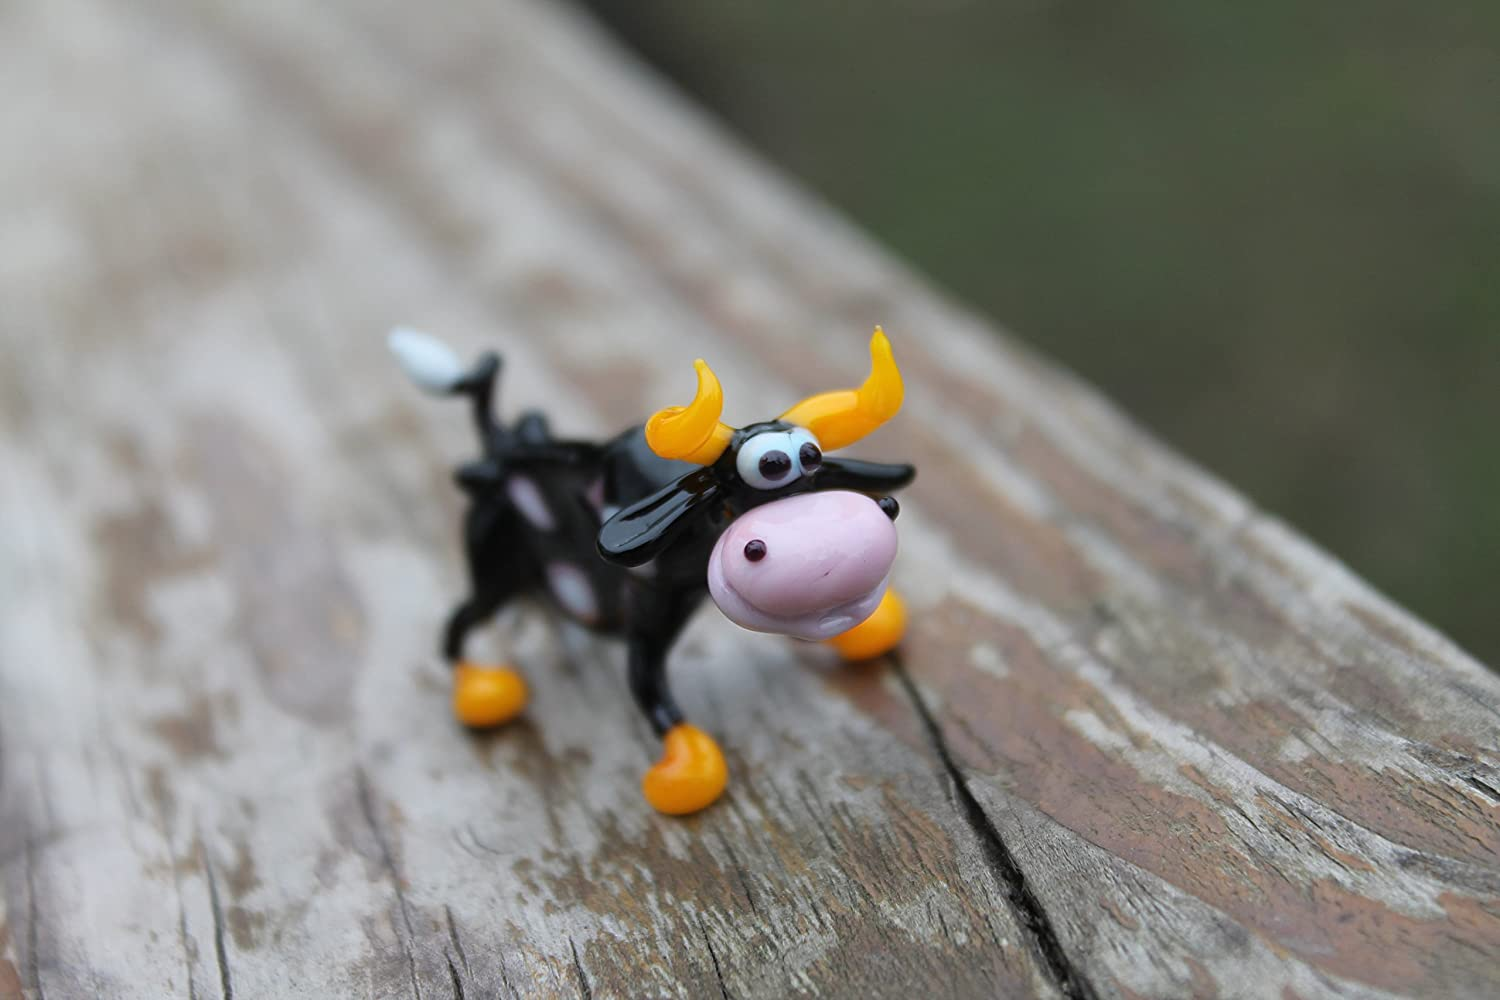 Small Glass Cow Figurine Sculpture Funny handmade Cute Homedecor Murano Art Gifts Miniature Blown cows Collectible Puppy Toys Lampwork Boro